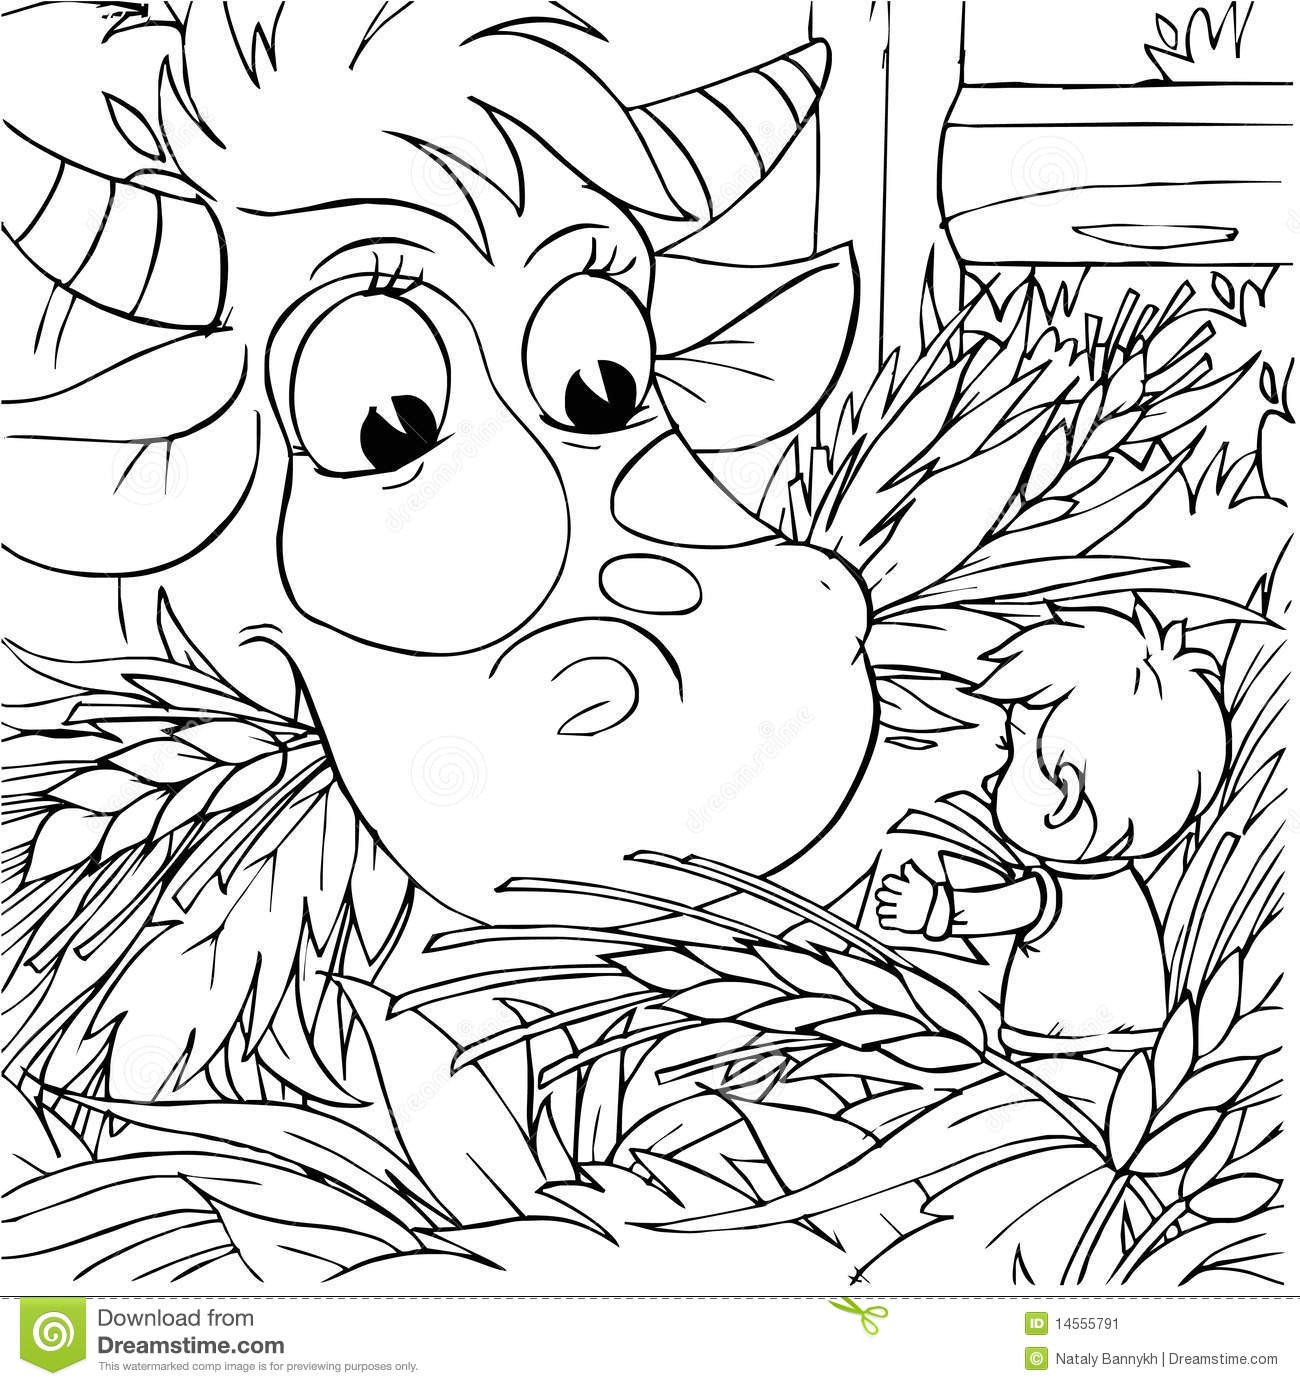 tom thumb coloring pages - photo#13